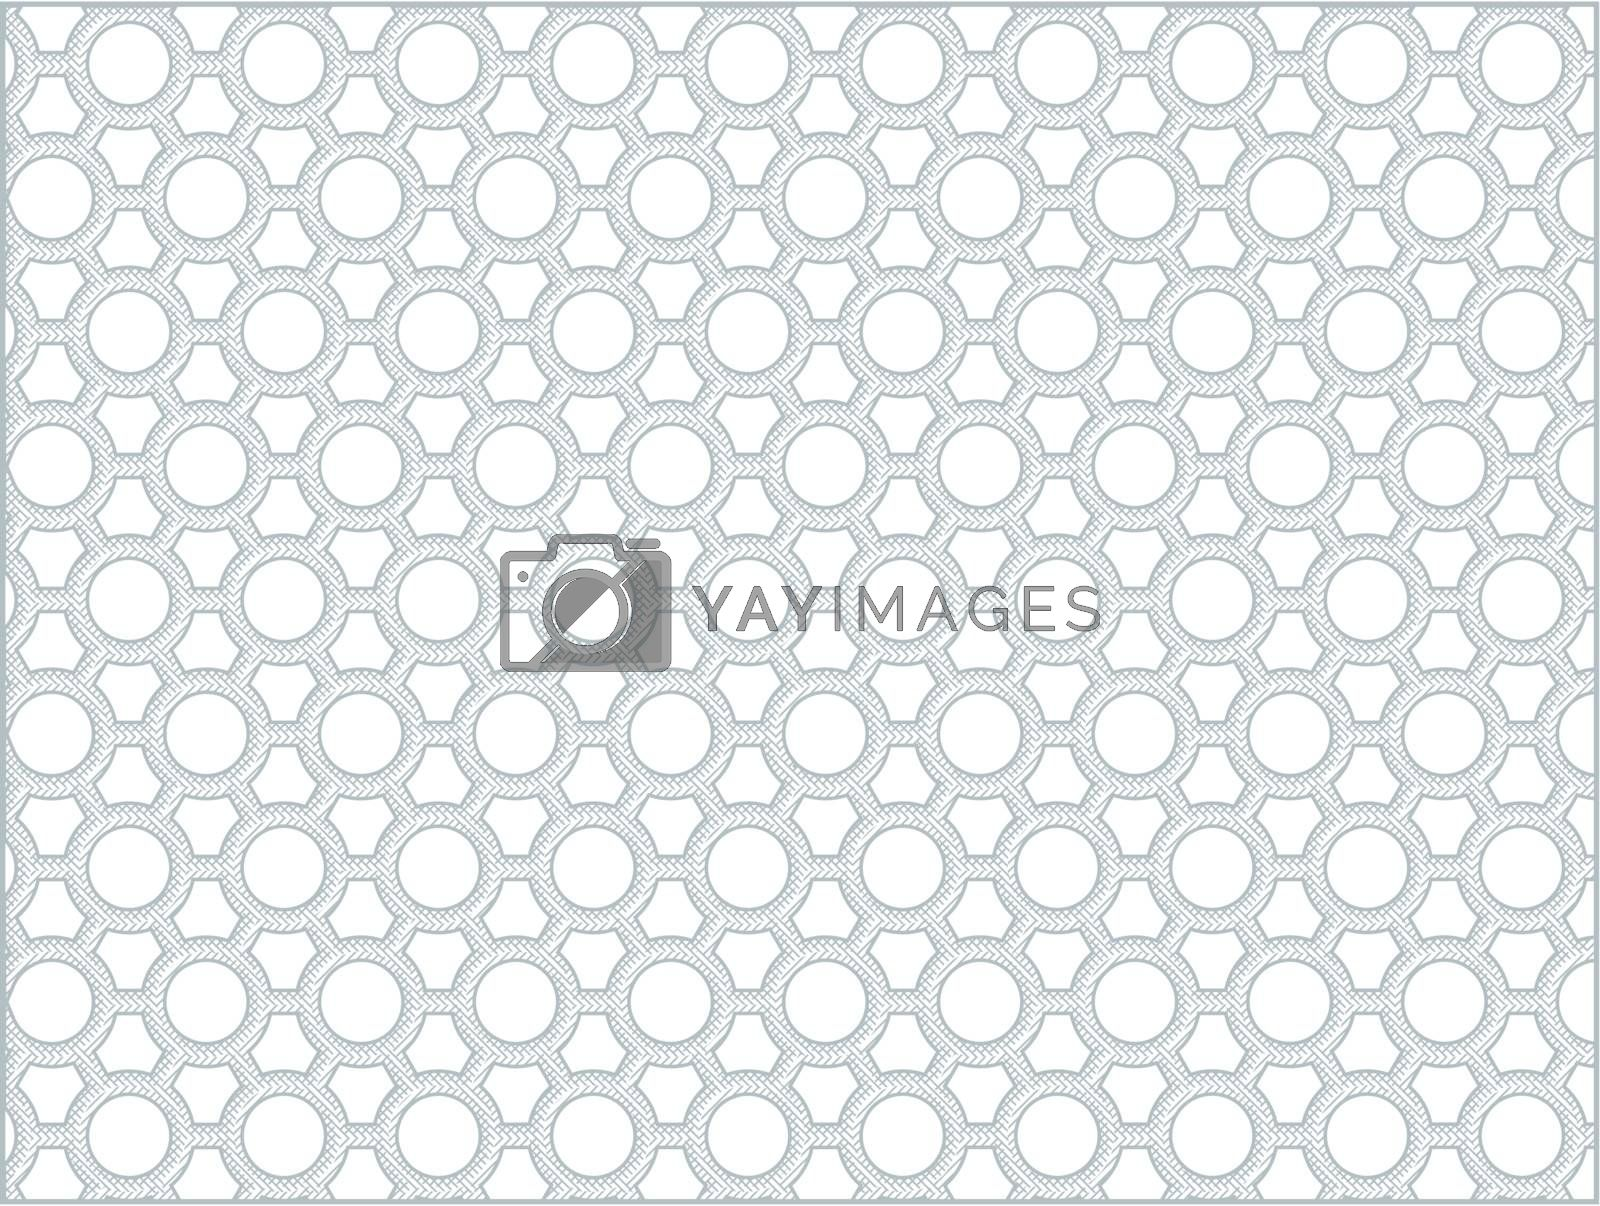 Abstract vector background - geometric monochrome pattern